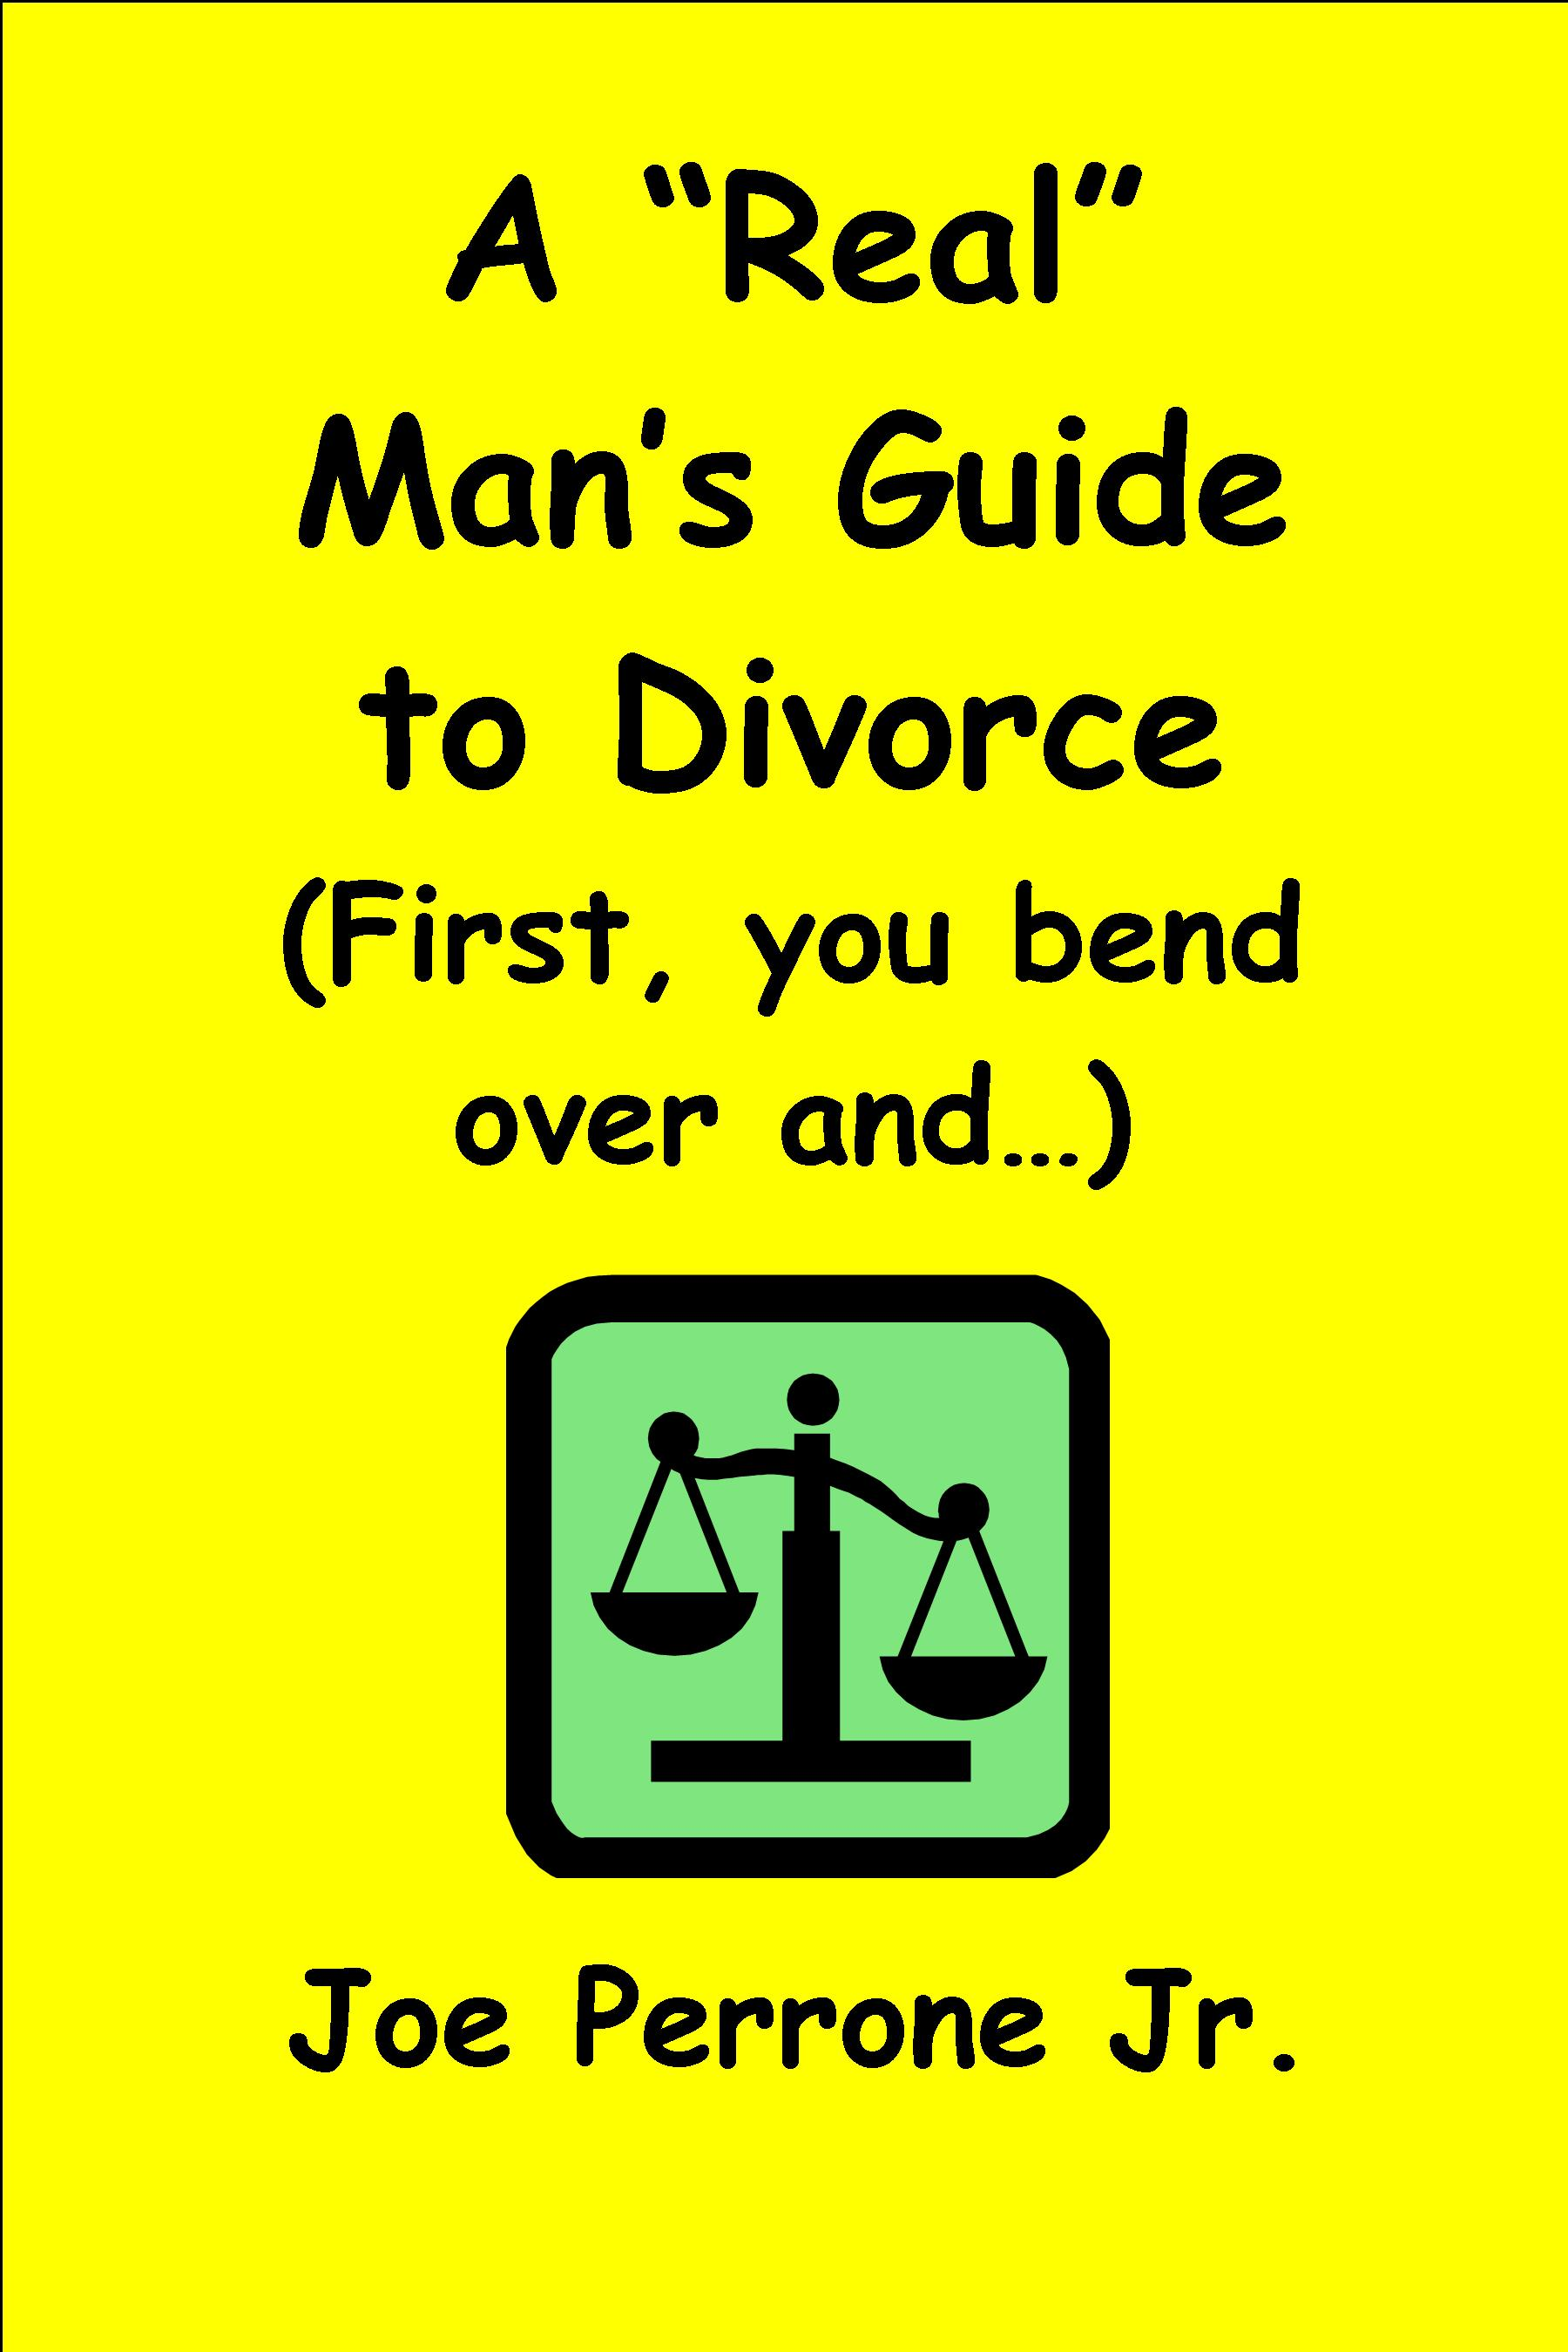 A Real Man's Guide To Divorce